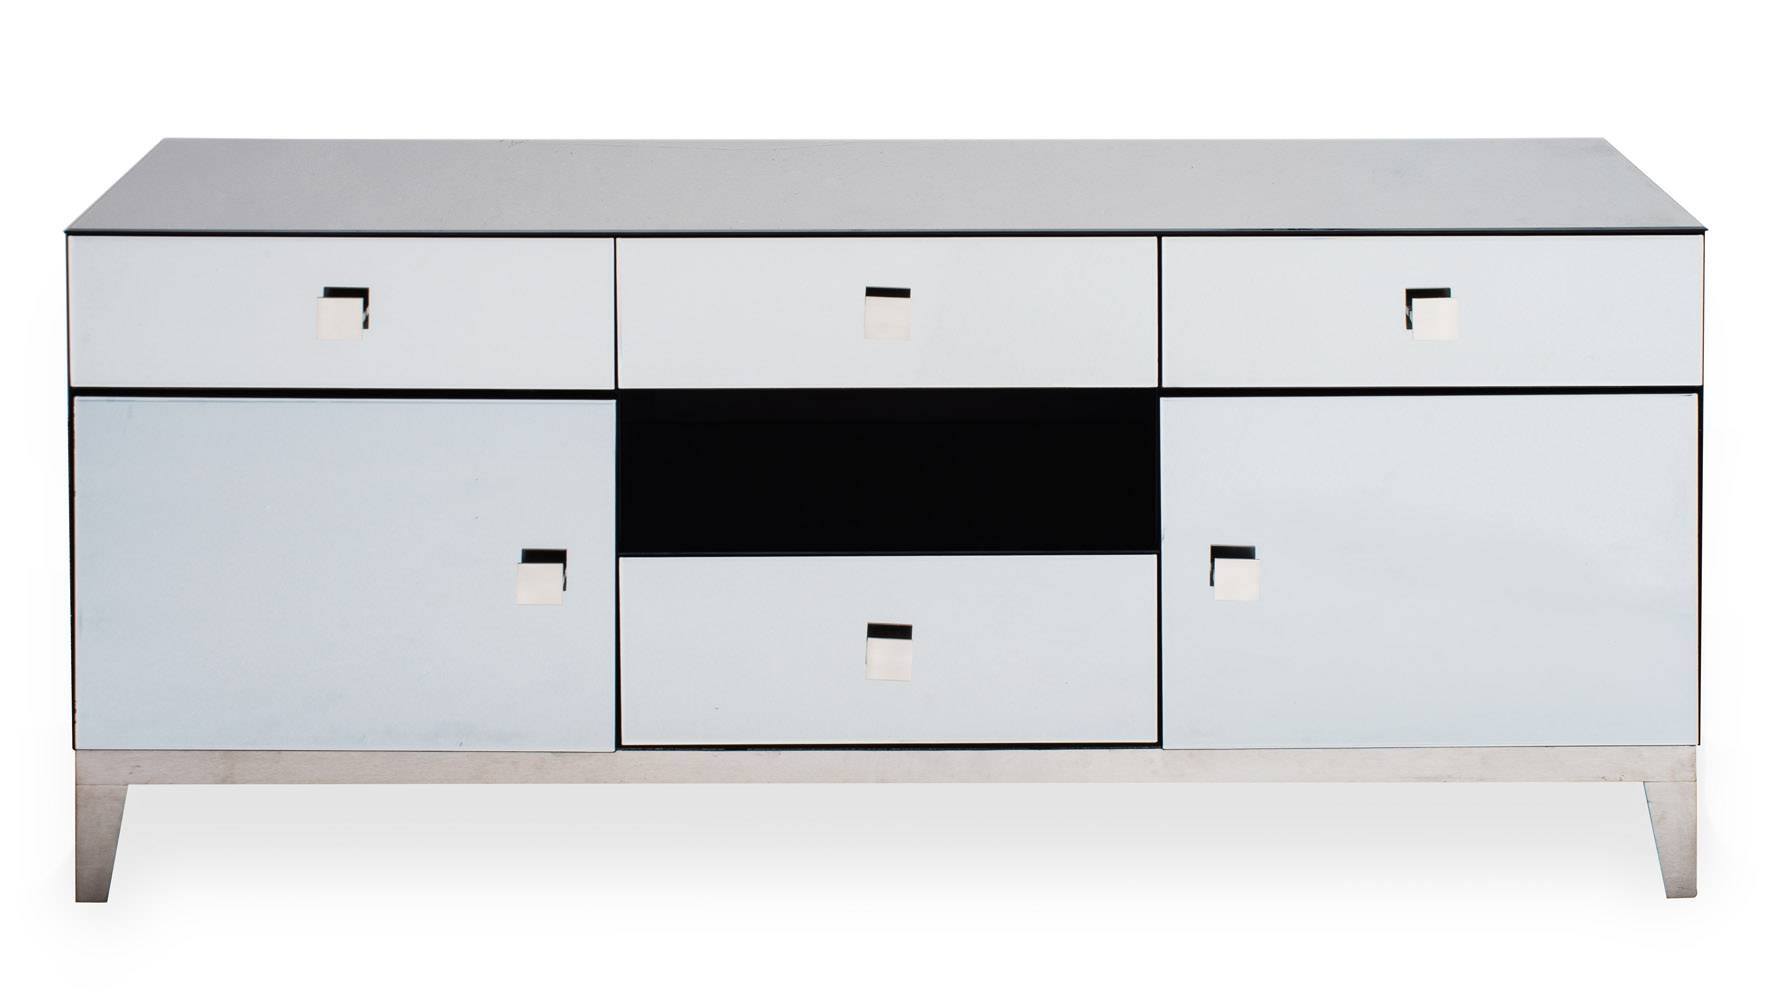 Modern Grey Mirrored Glass Berlin Tv Stand | Zuri Furniture throughout Mirrored Tv Stands (Image 10 of 15)